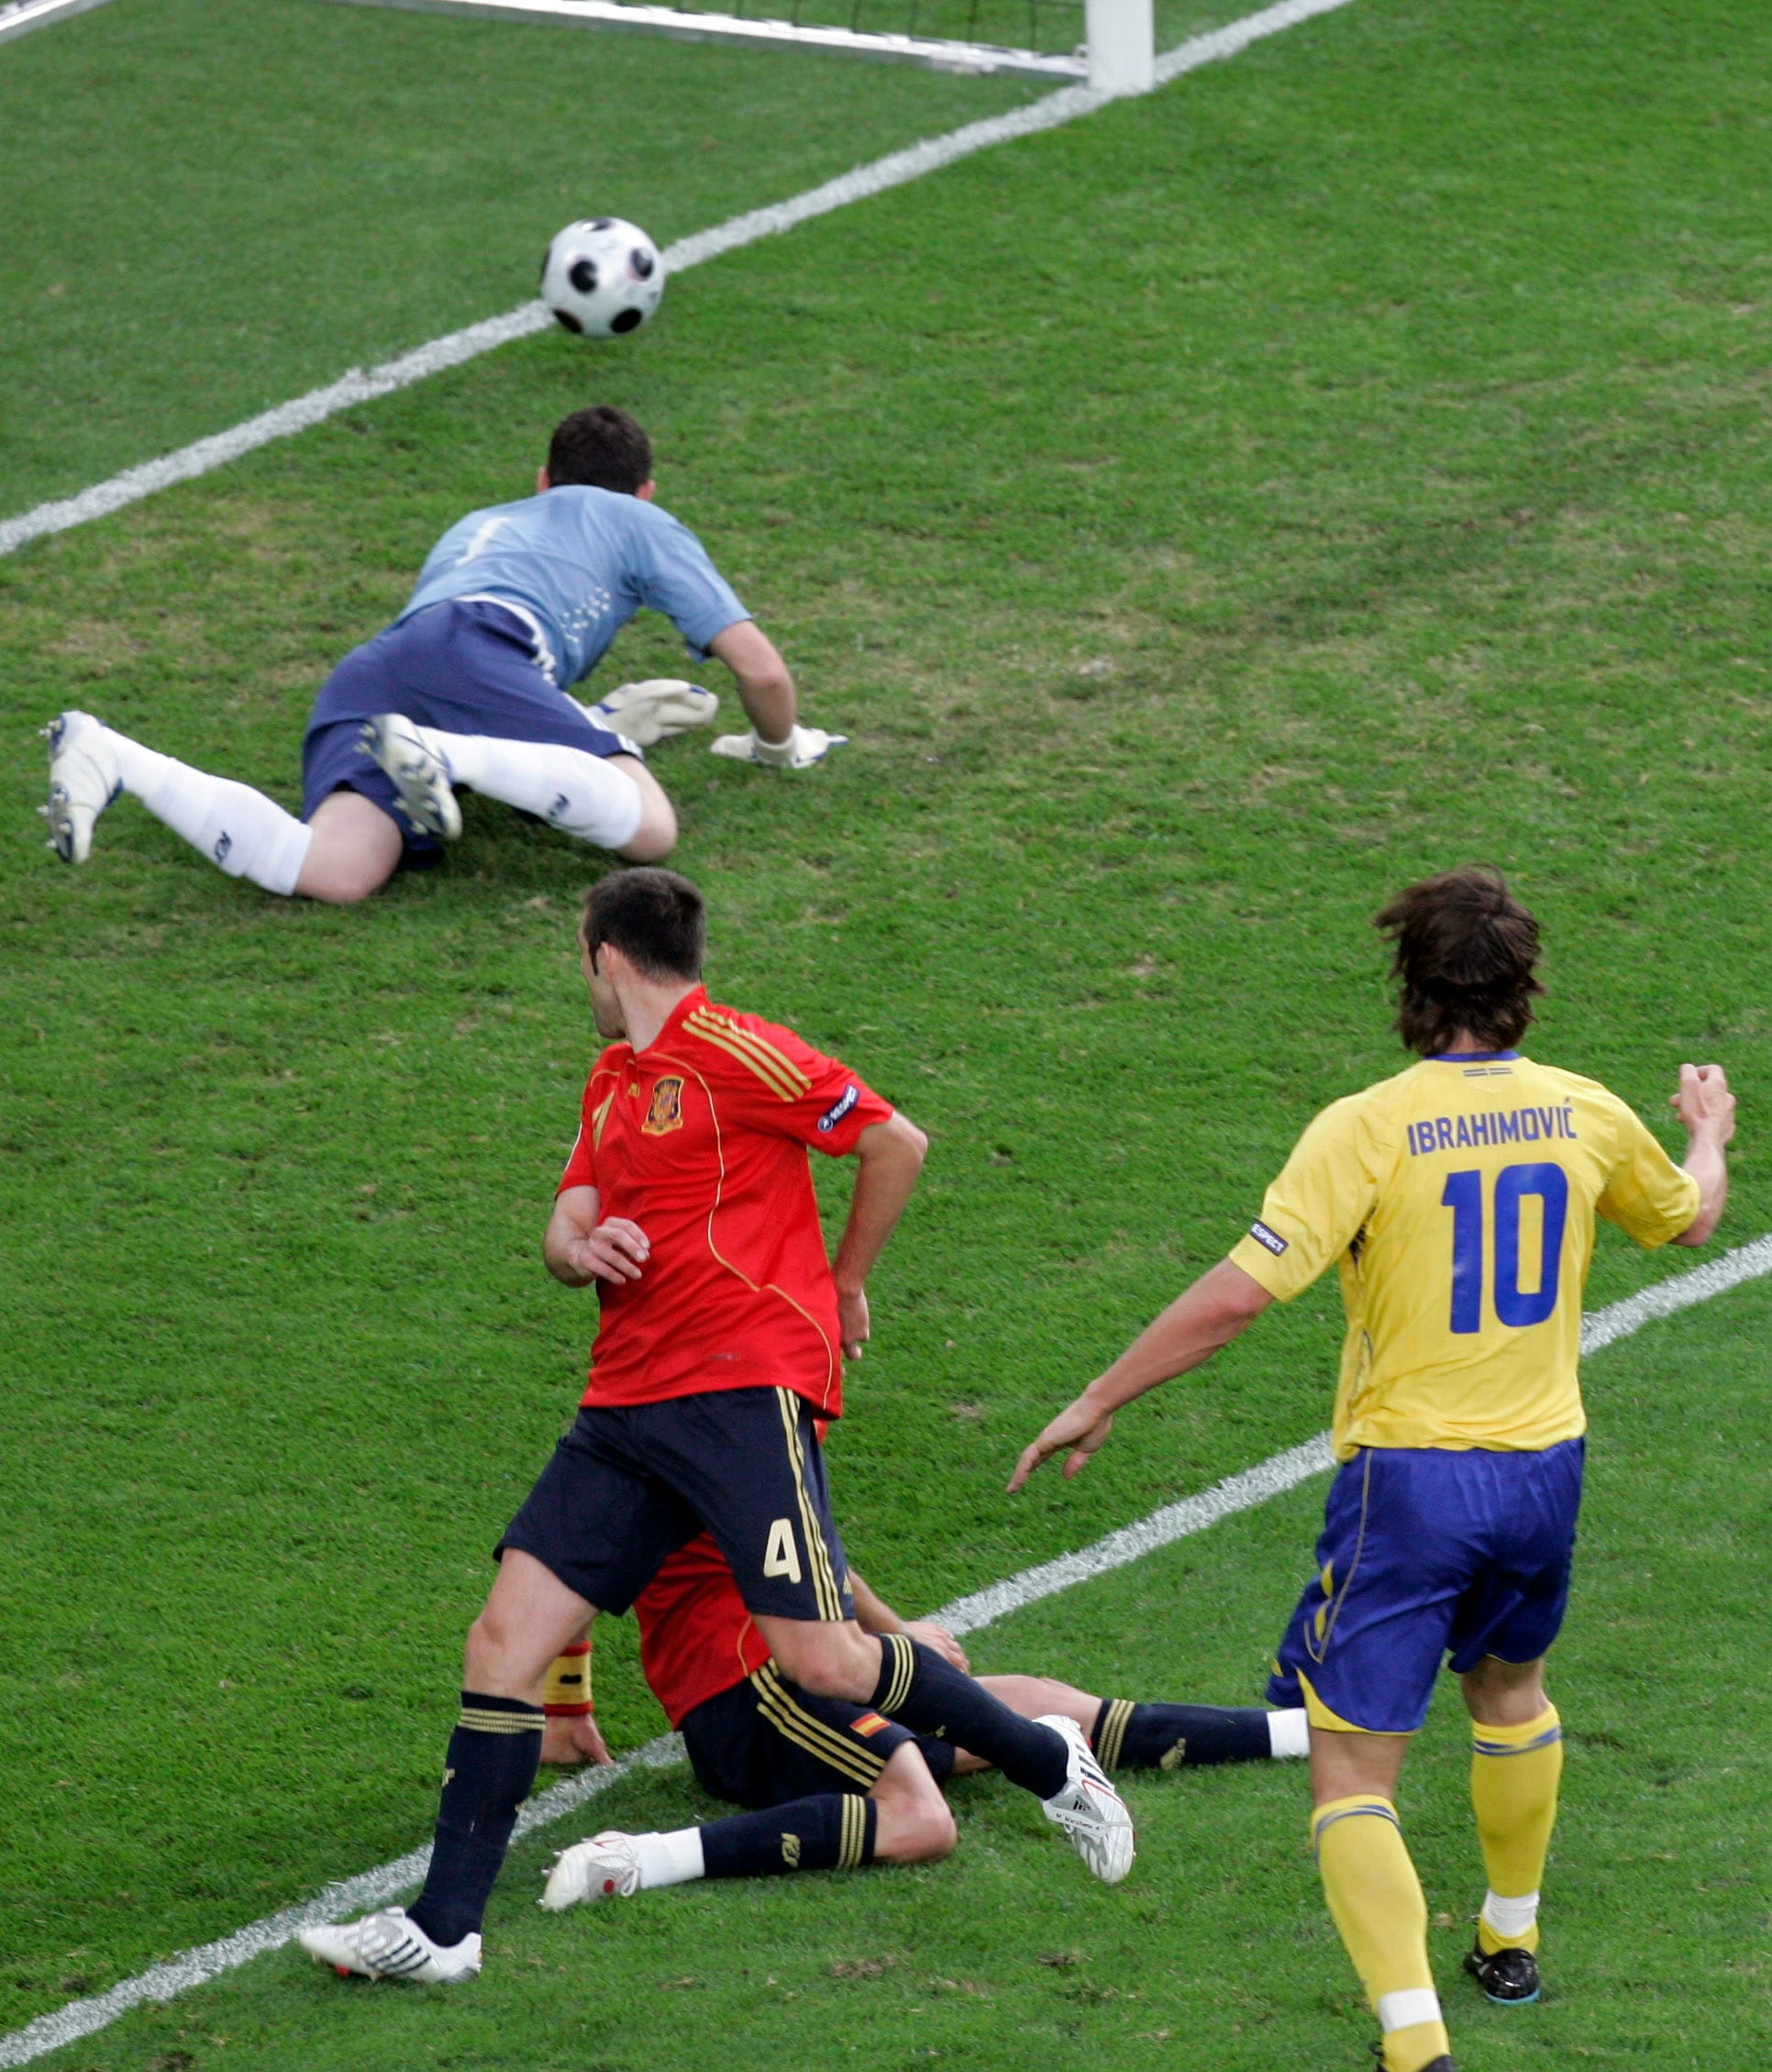 Sweden's Zlatan Ibrahimovic, right, scores during the group D match between Sweden and Spain in Innsbruck, Austria.